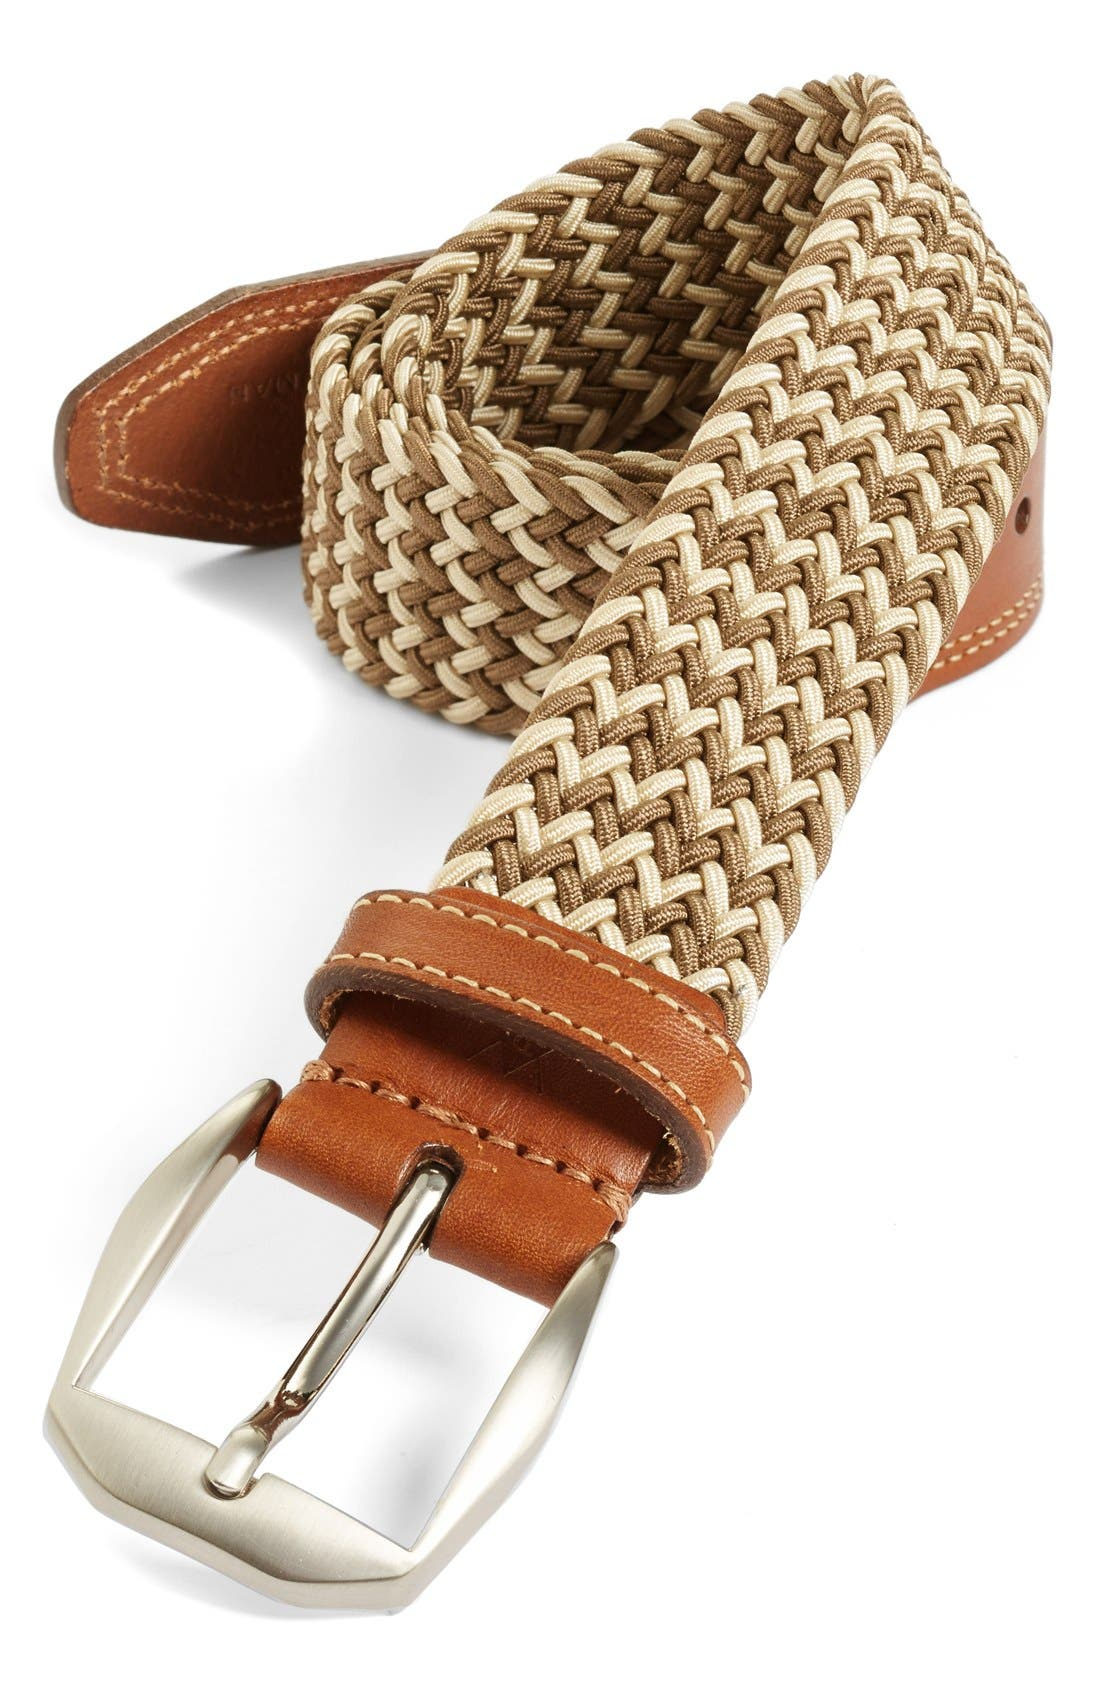 'Beck' Stretch Belt,                             Main thumbnail 1, color,                             SAND/ WHITE